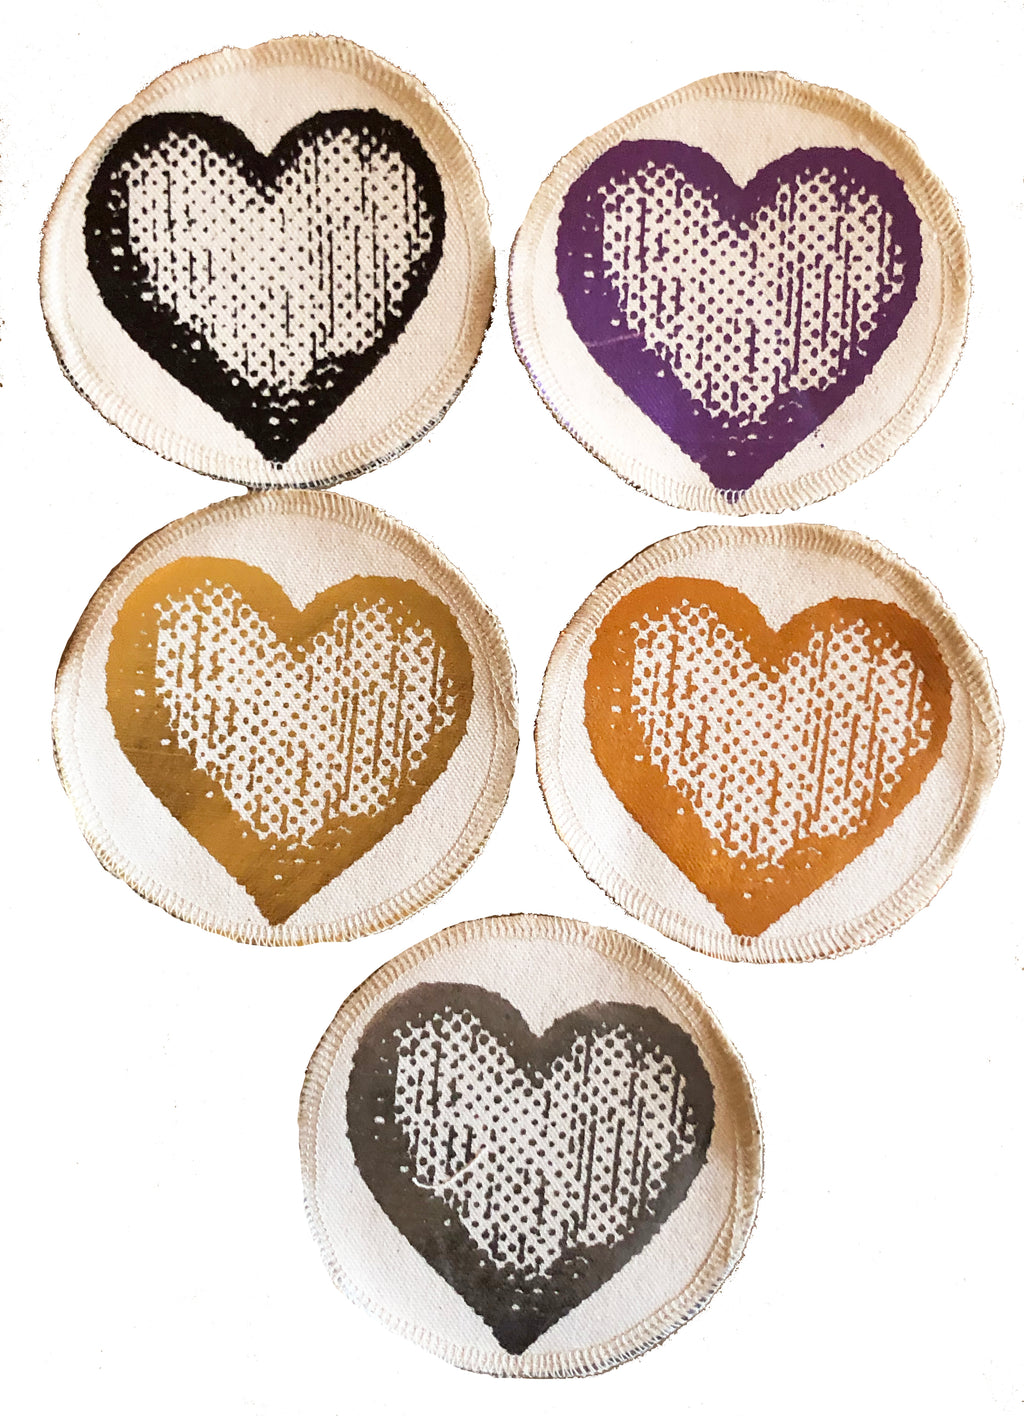 Heart patches.